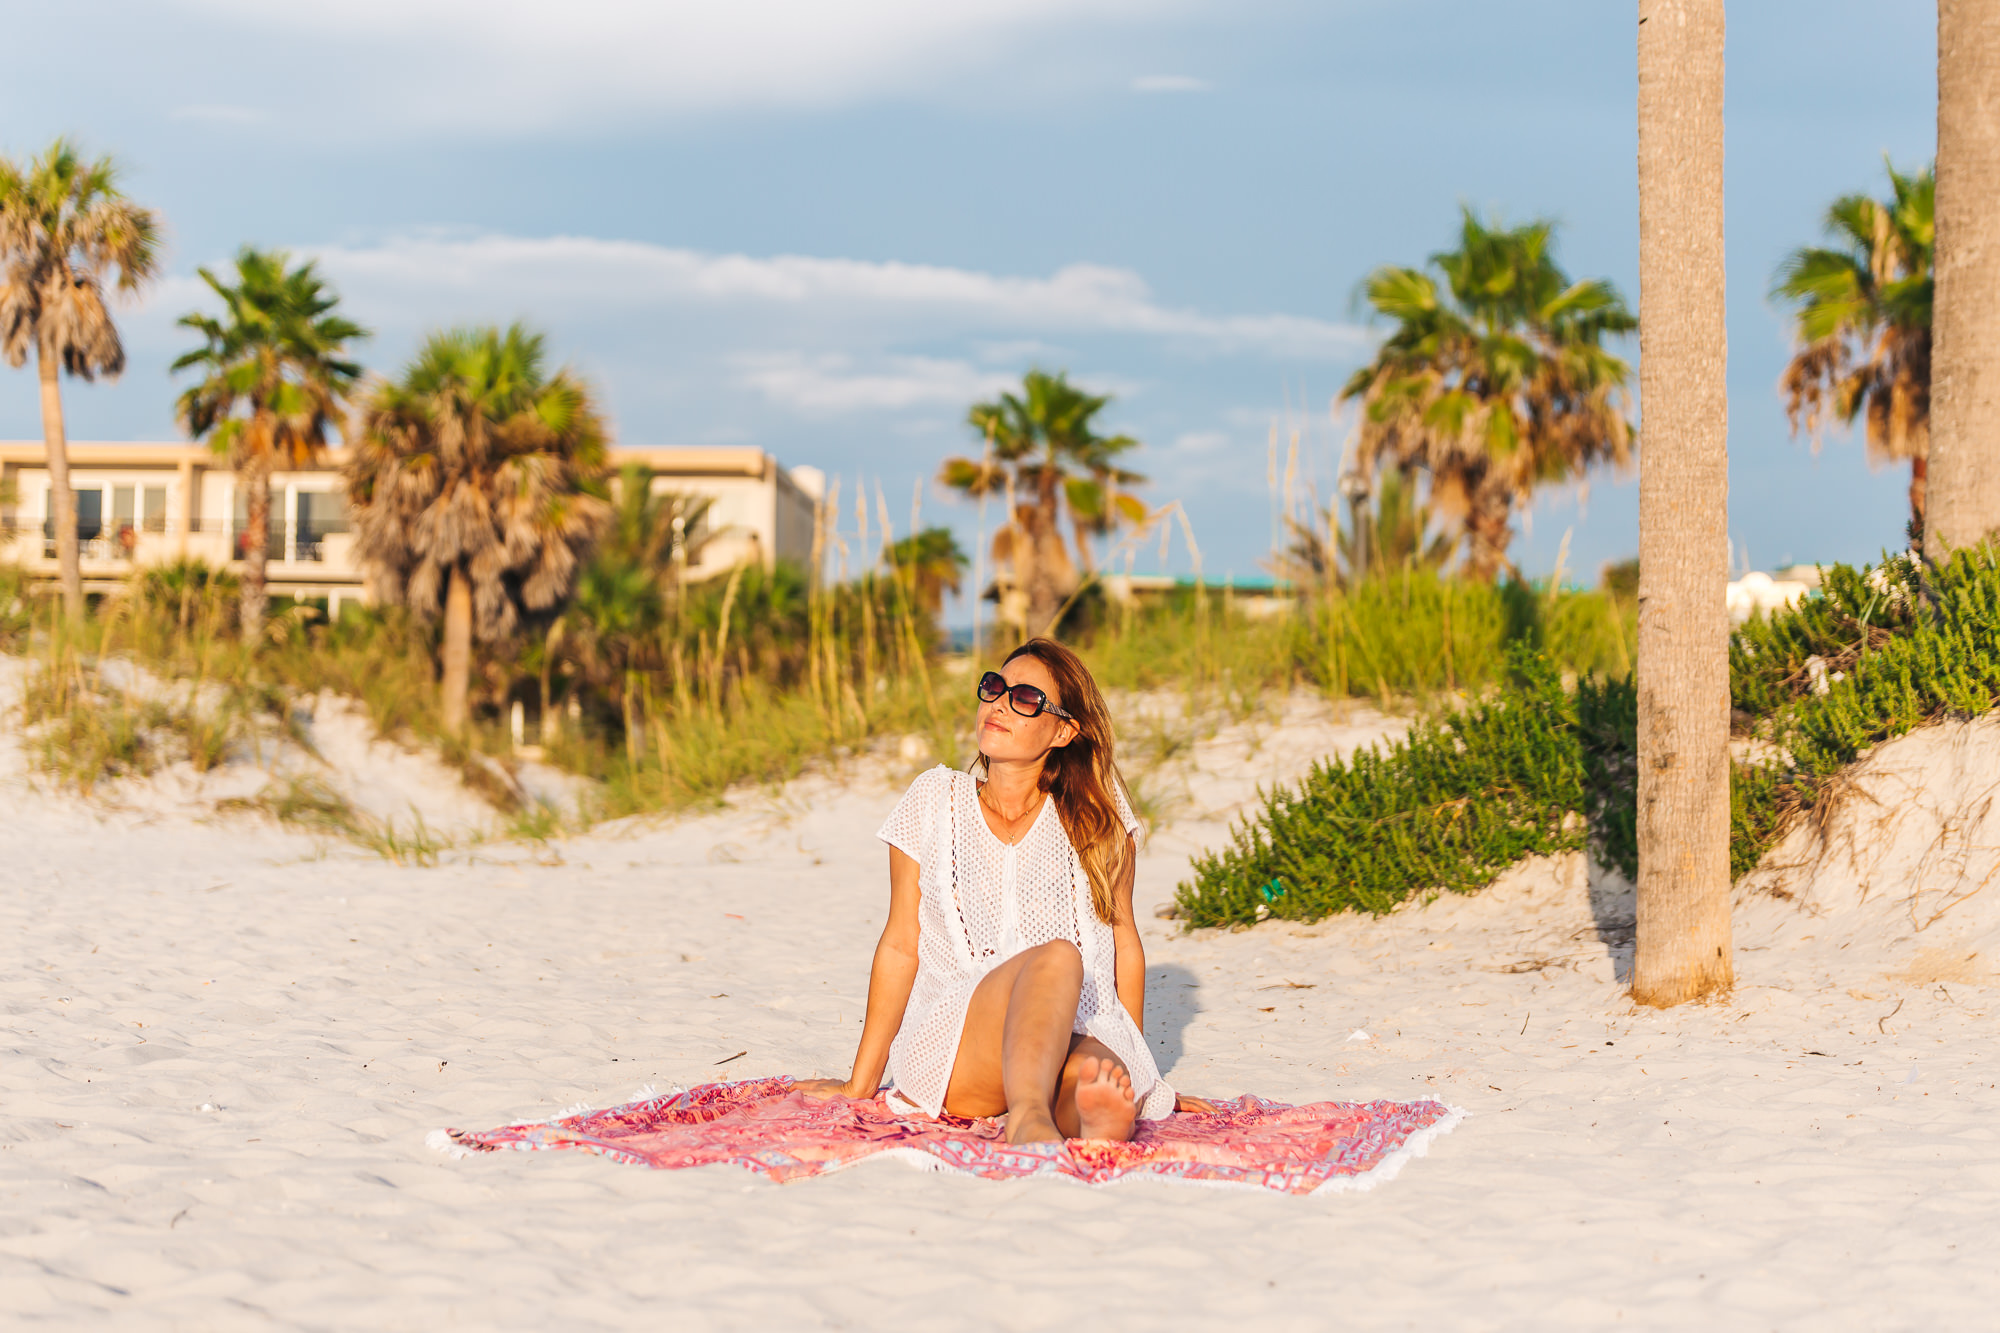 Soaking in the sun at Clearwater beach